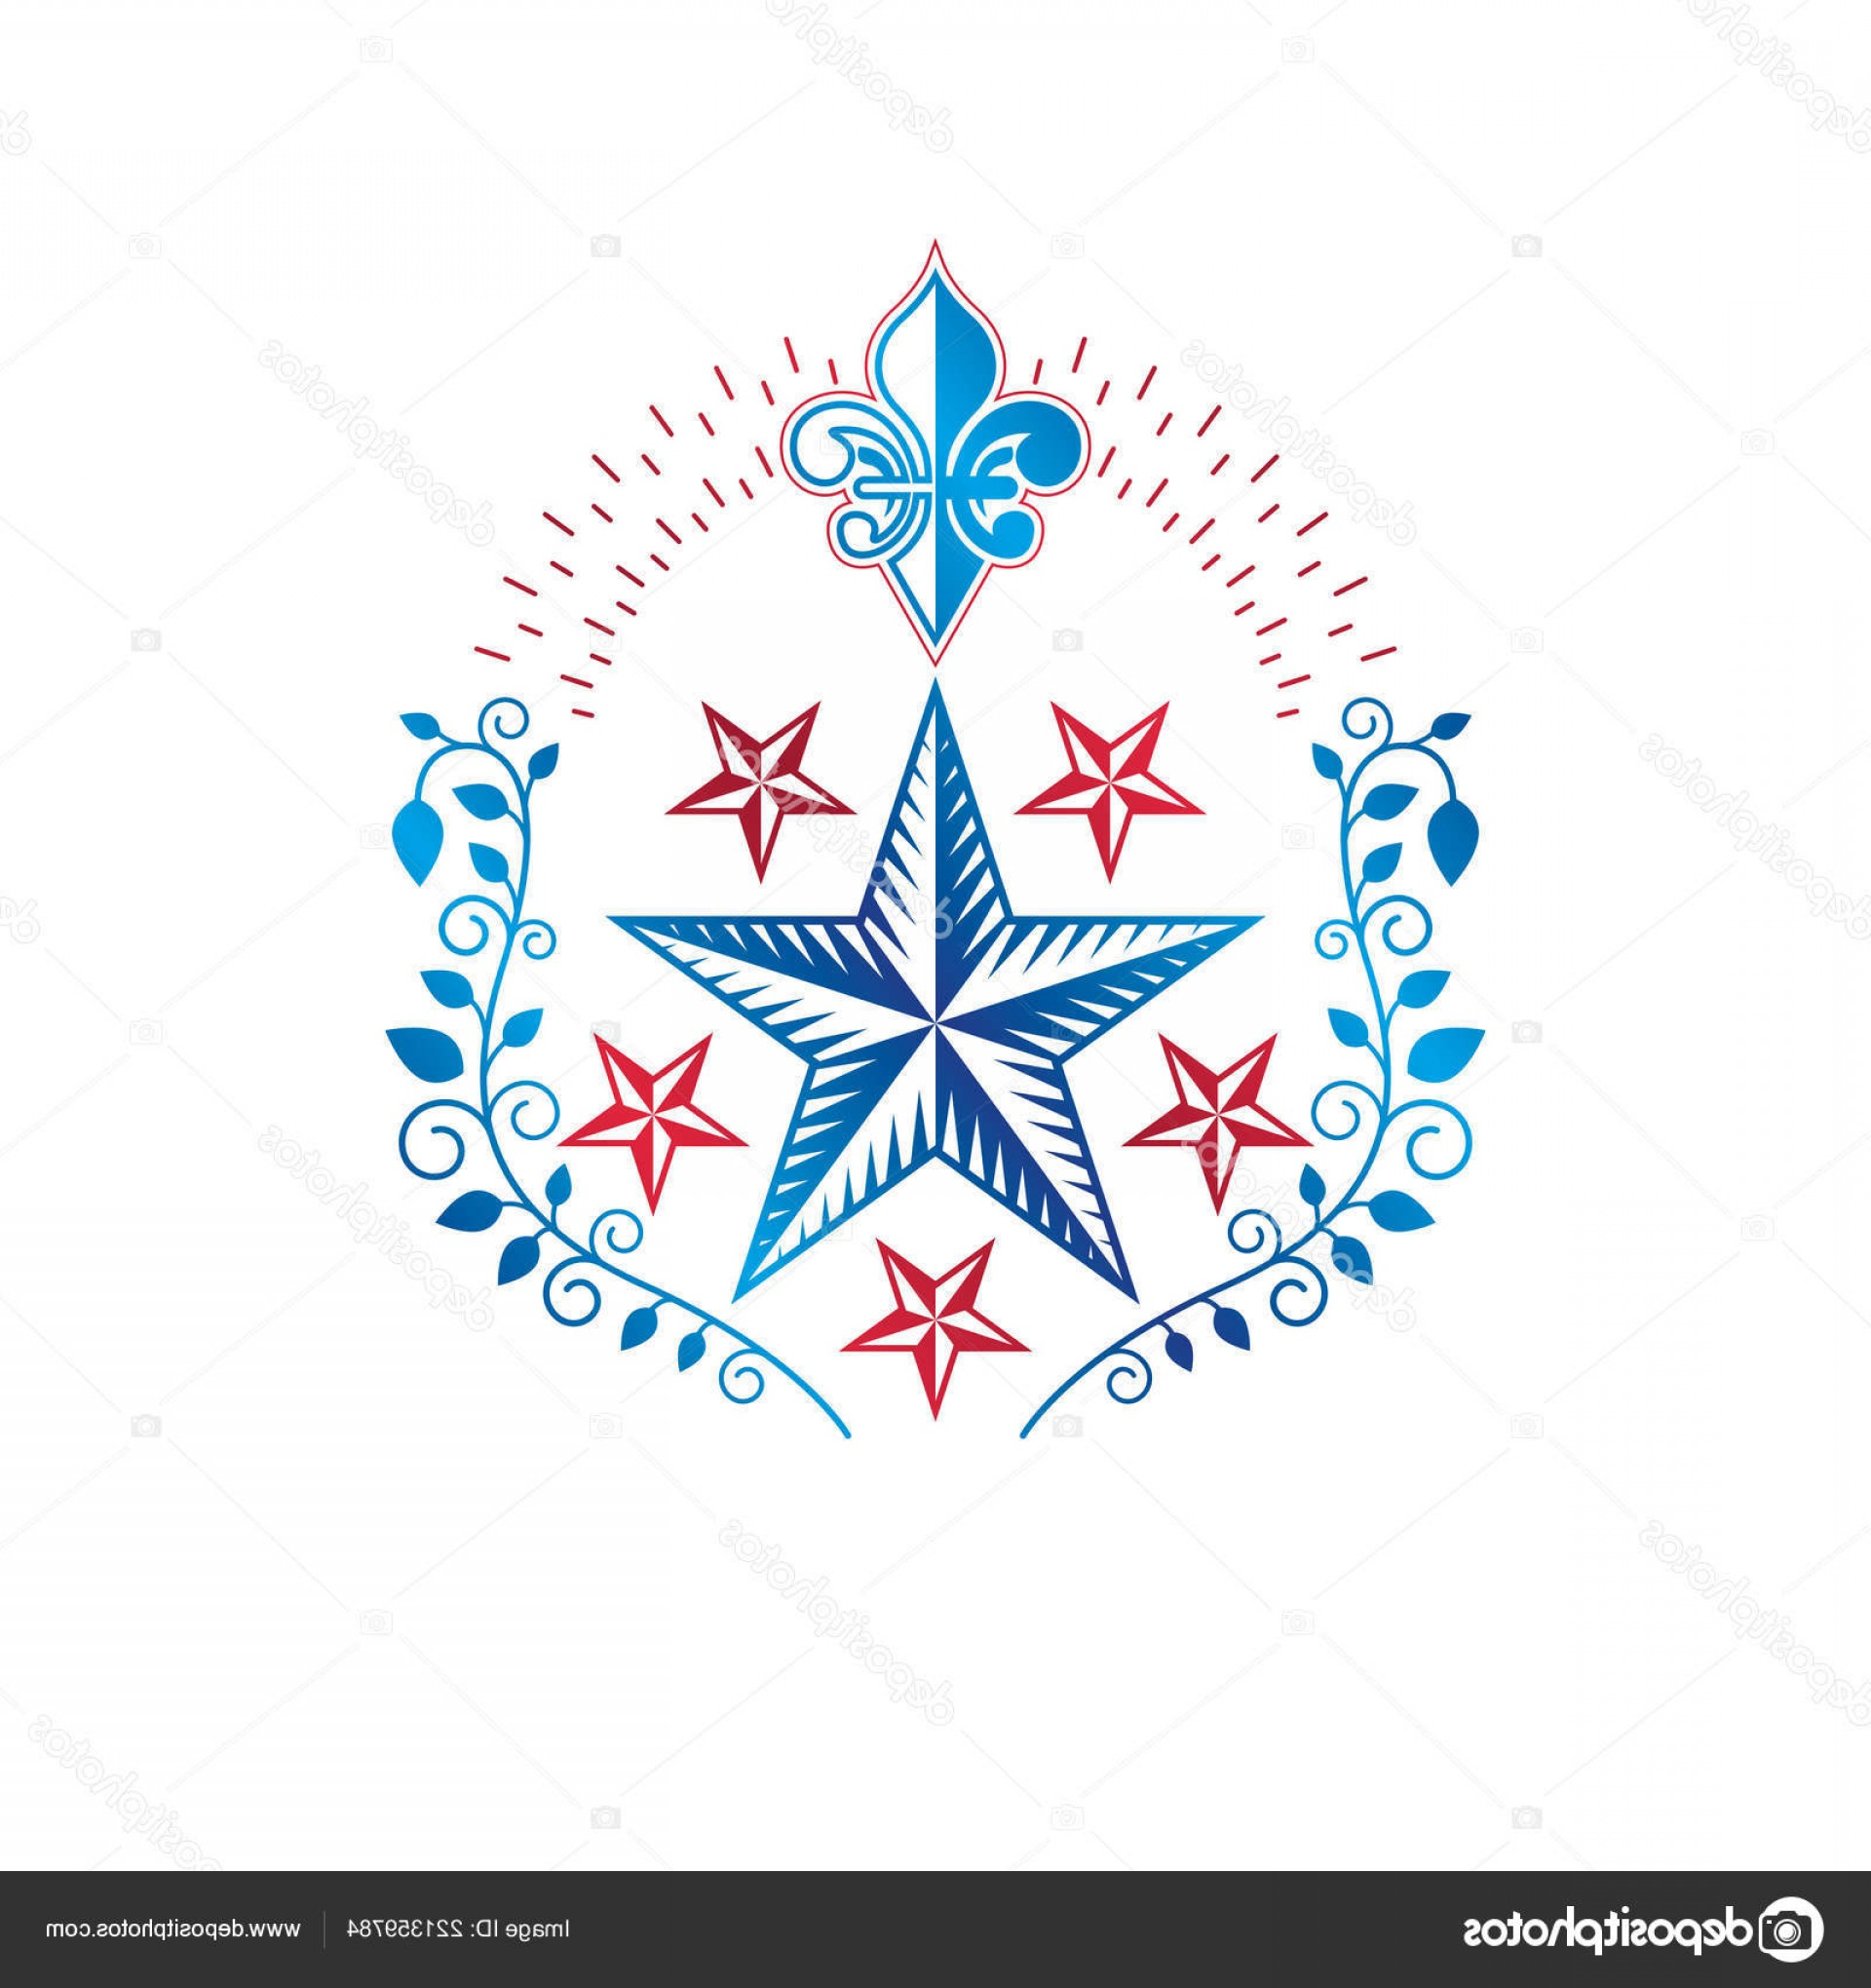 Heraldic Vector Ornaments: Stock Illustration Ancient Star Emblem Decorated Lily